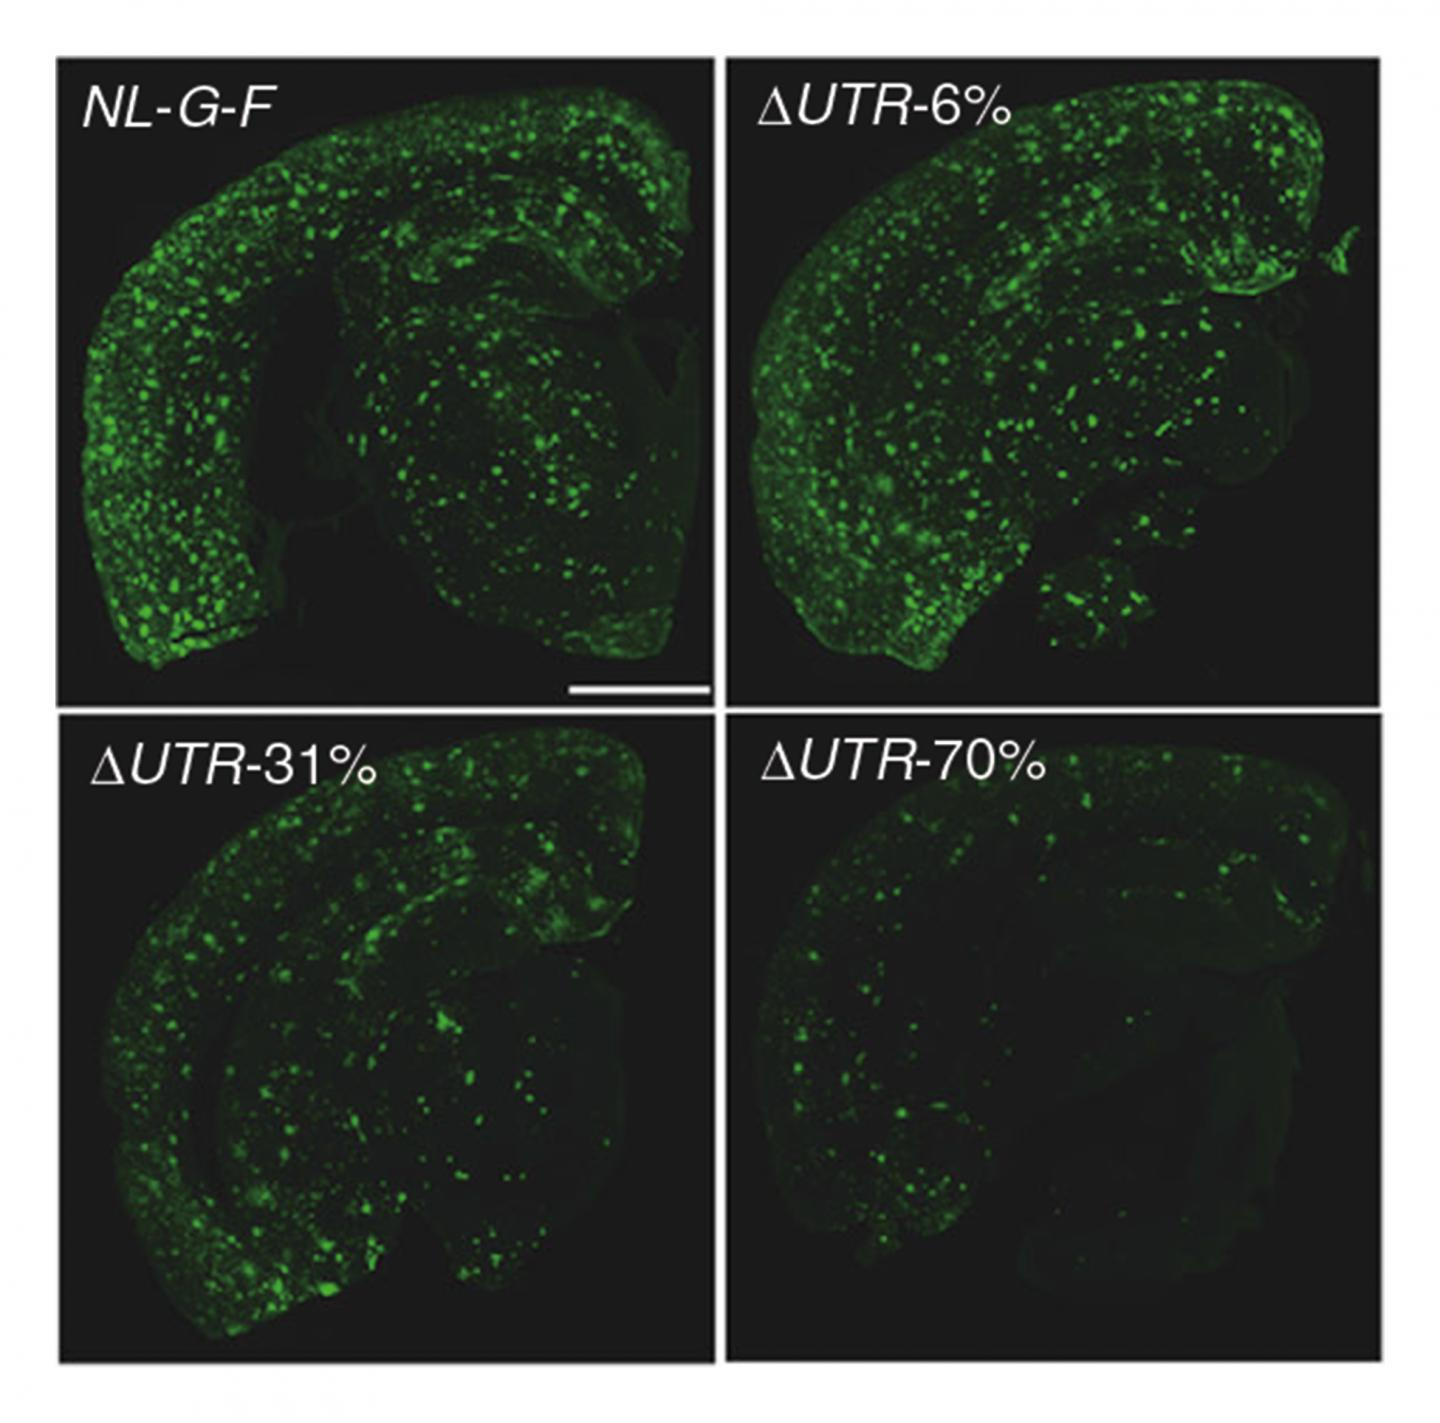 Amyloid-beta (Aβ) Pathology in the Mouse Model of Alzheimer's Disease (AD)